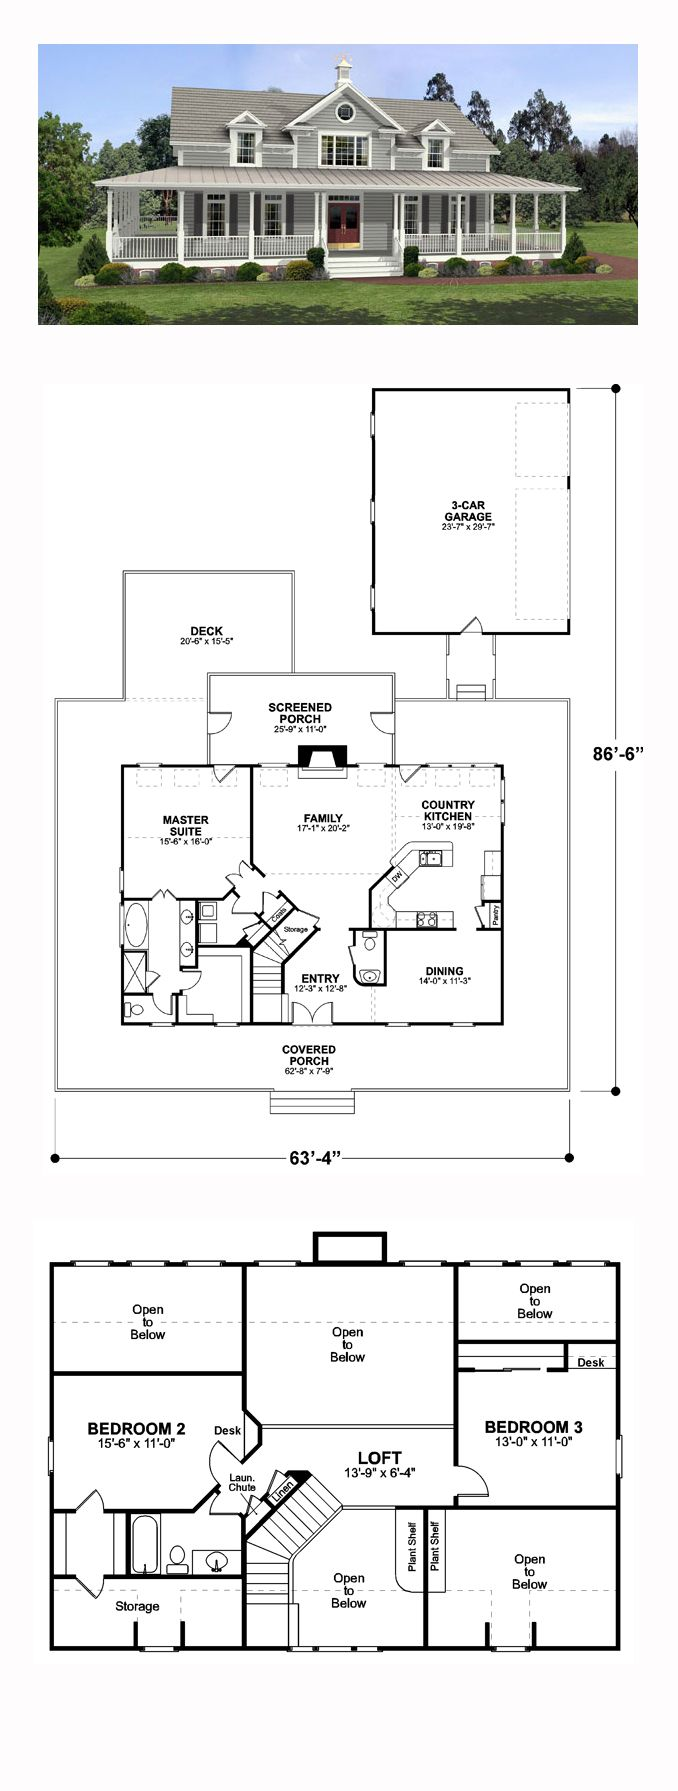 COOL House Plans Offers A Unique Variety Of Professionally Designed Home  Plans With Floor Plans By Accredited Home Designers. Styles Include Country  House ... Part 48